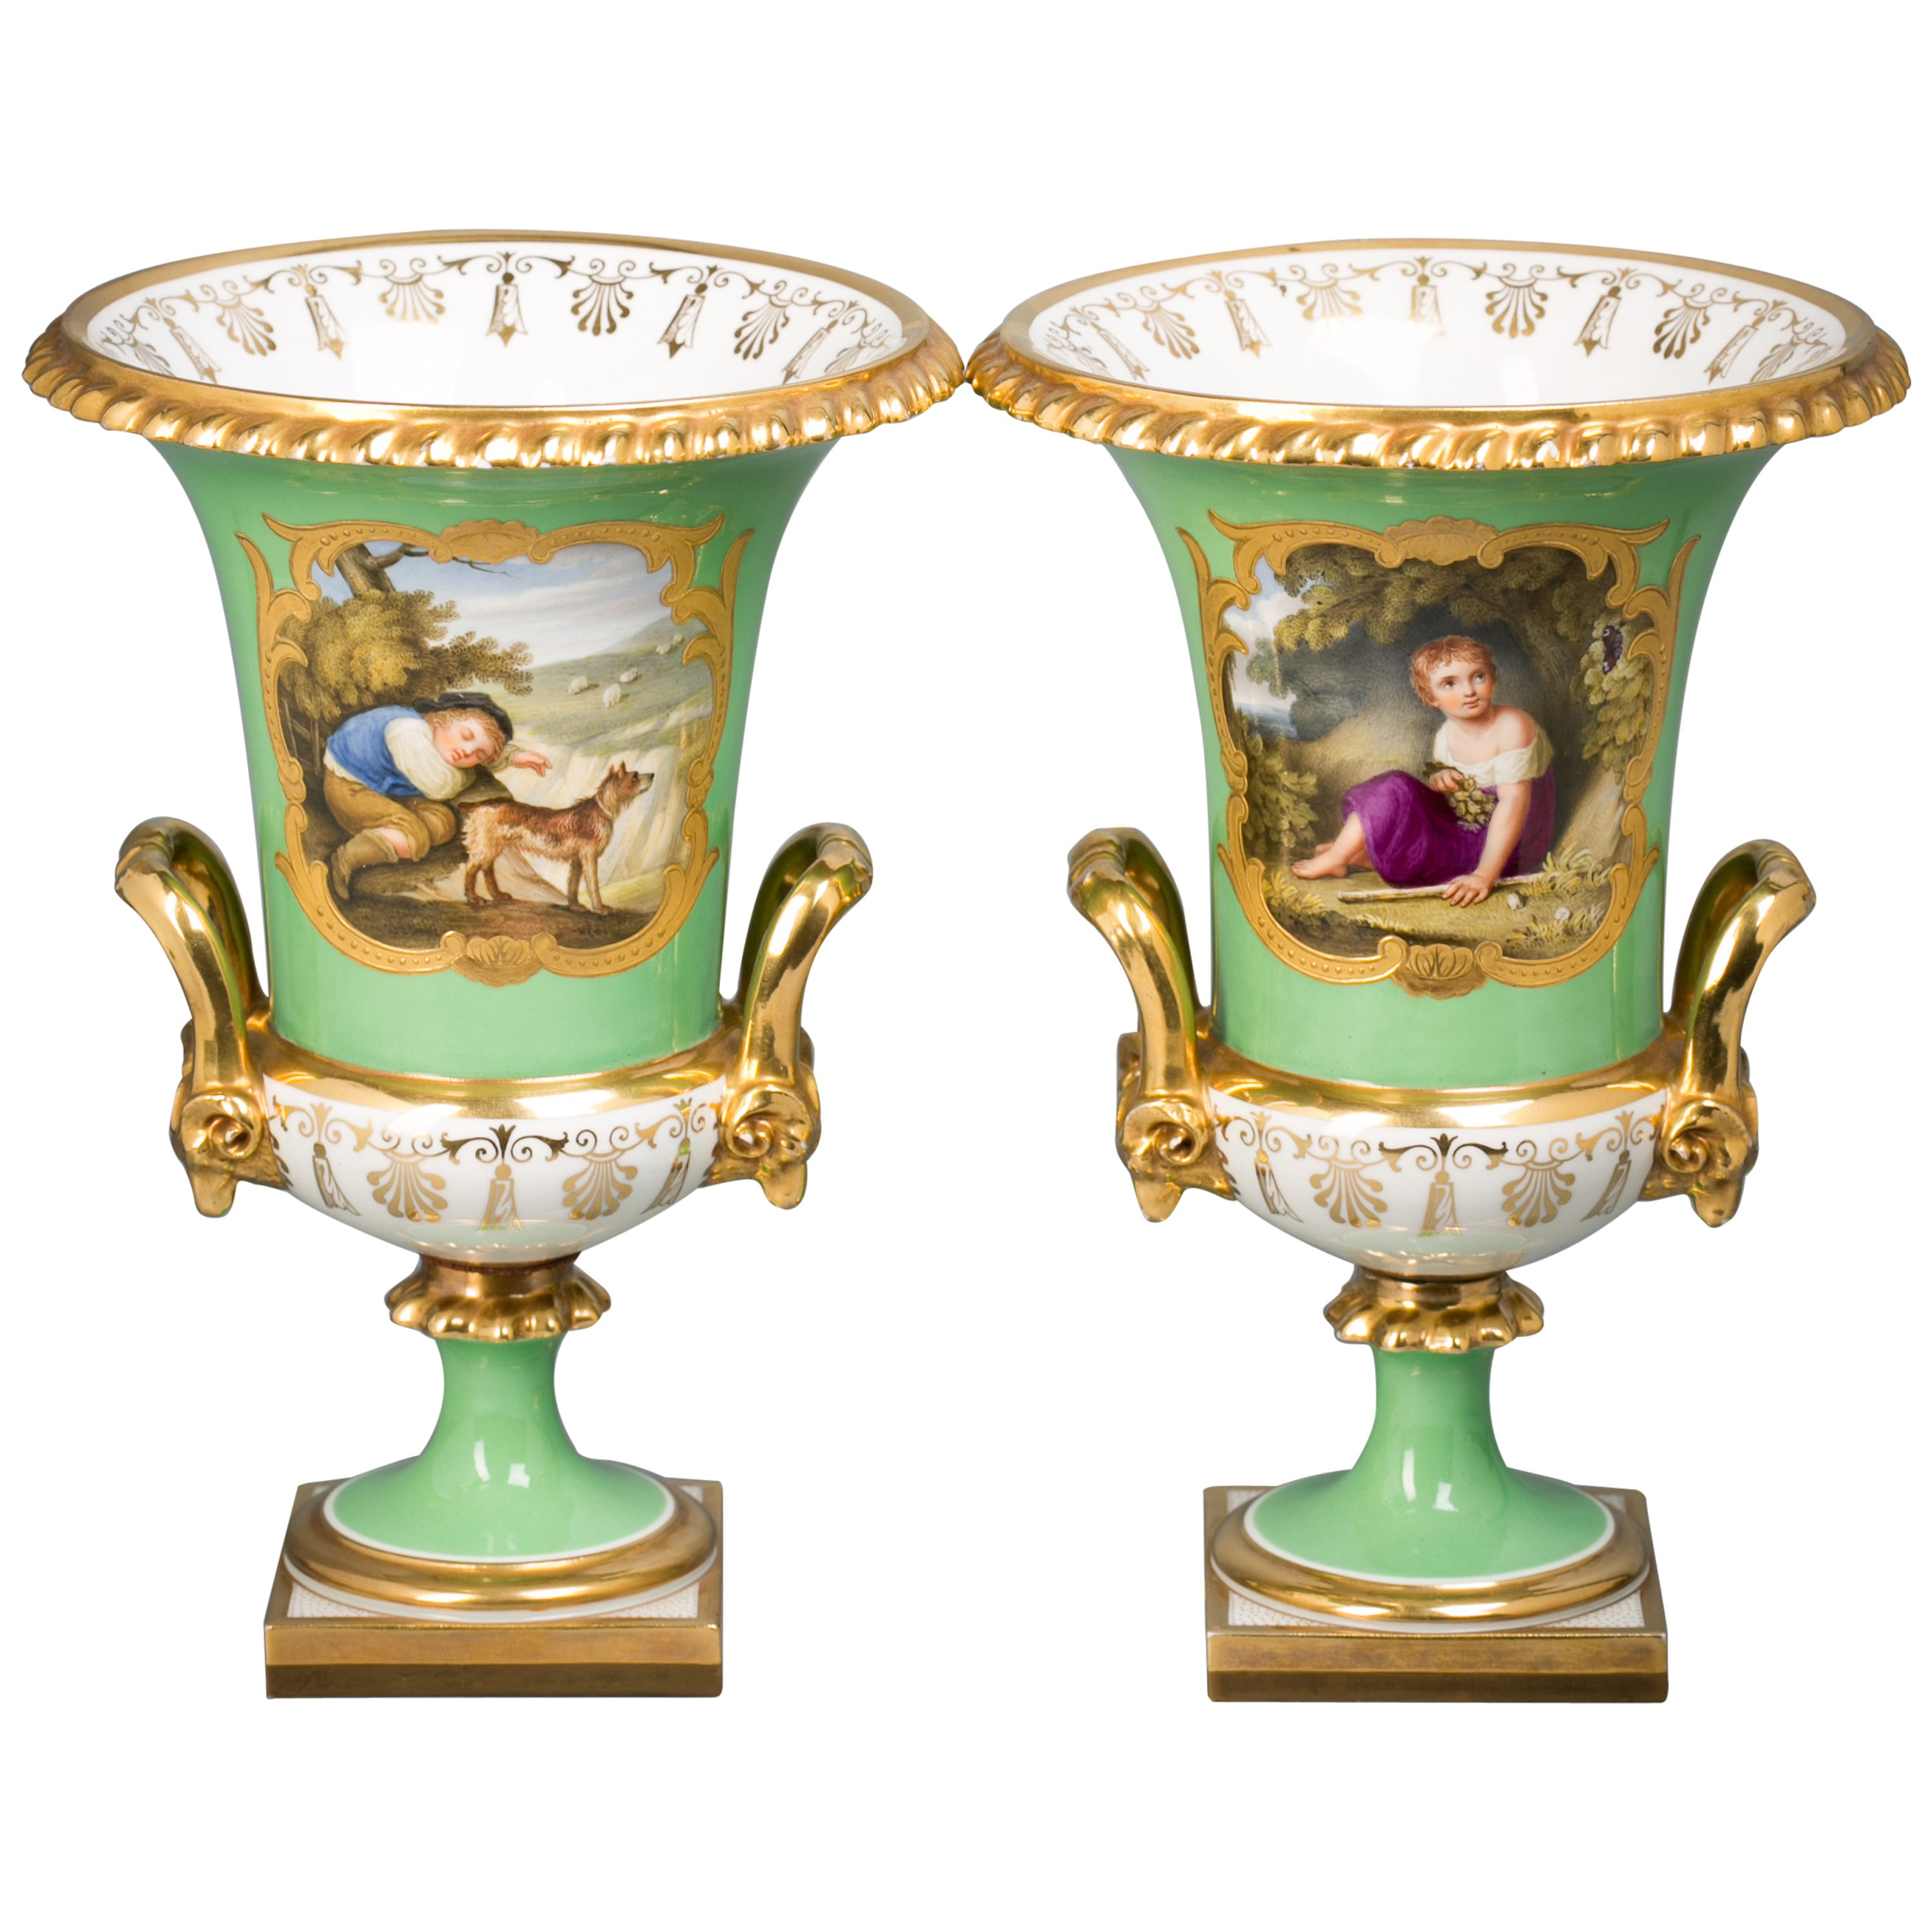 Pair of English Porcelain Vases, Flight Barr and Barr, circa 1820